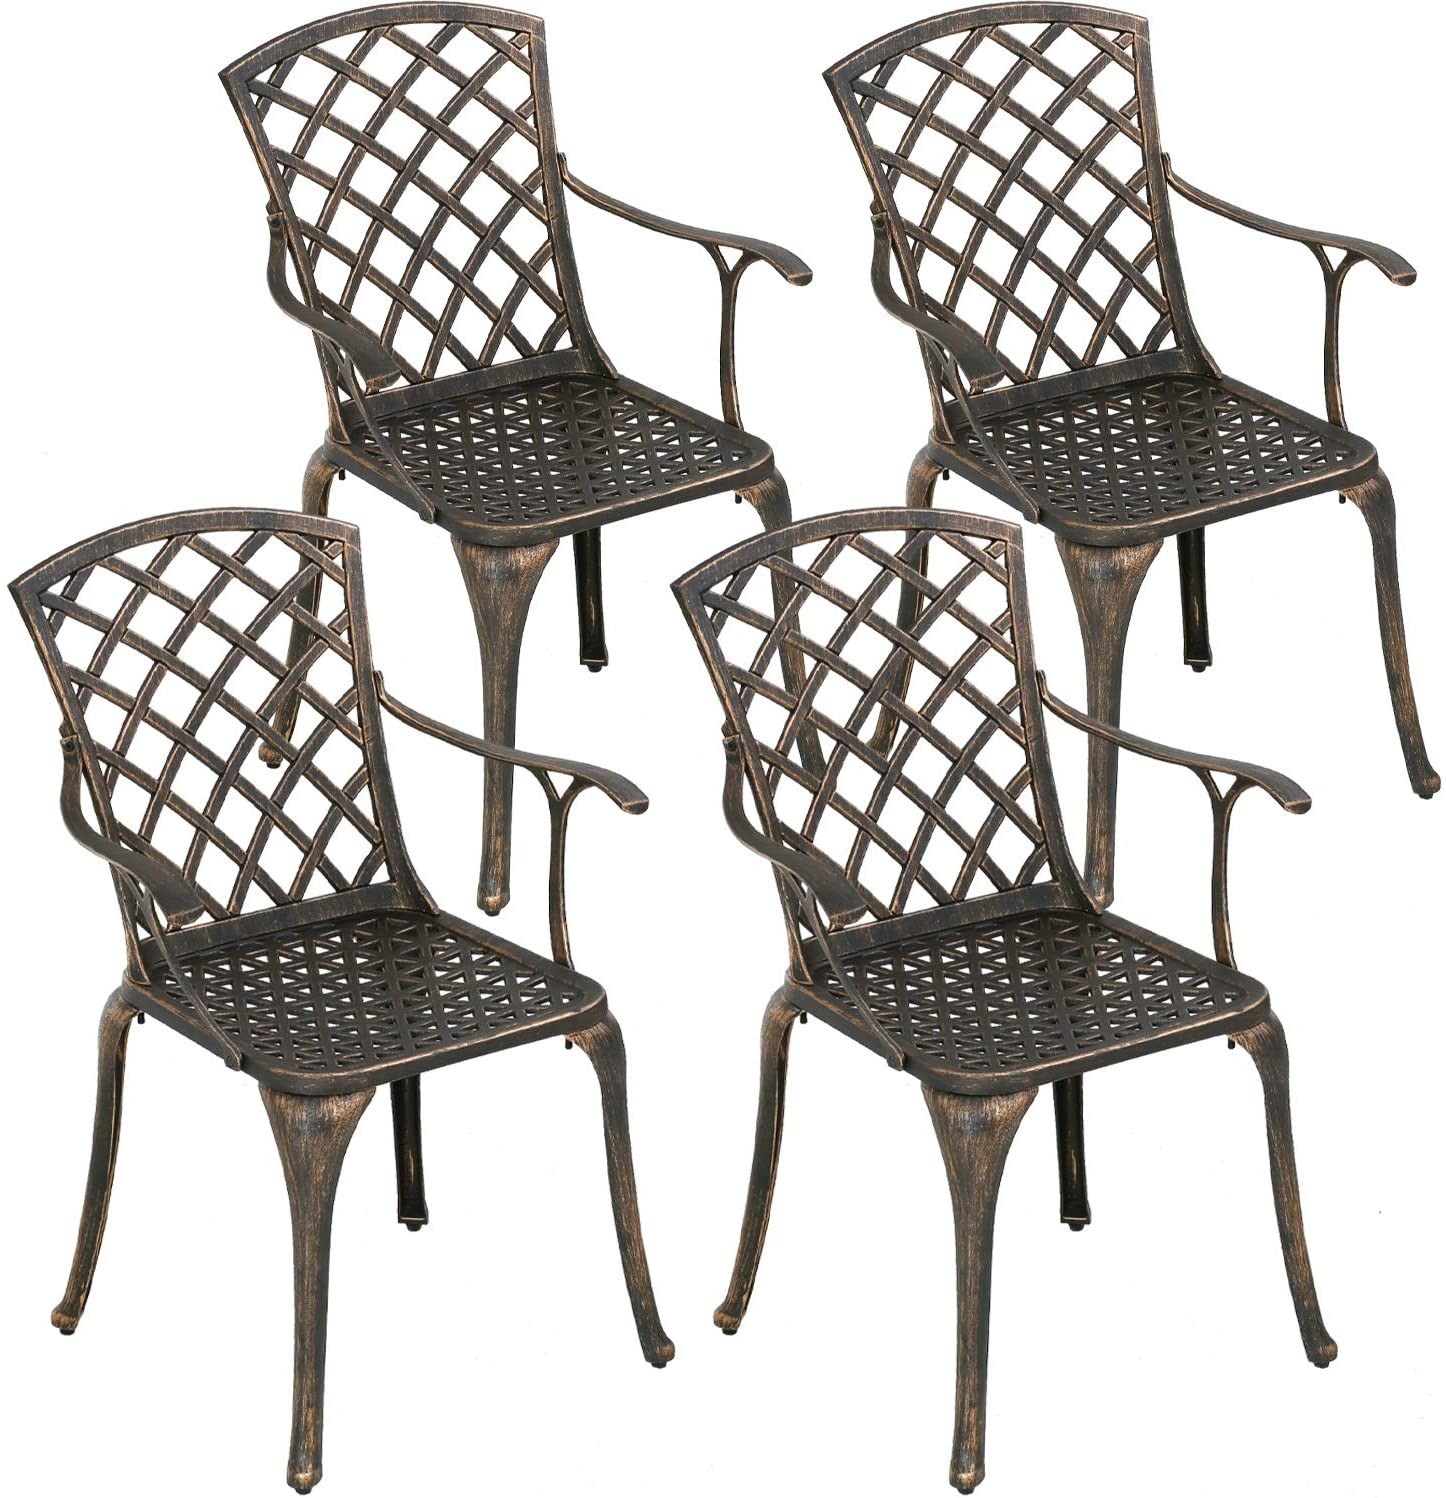 patio chairs outdoor chair dining chairs set of 4 wrought iron patio furniture patio furniture chat set weather resistant